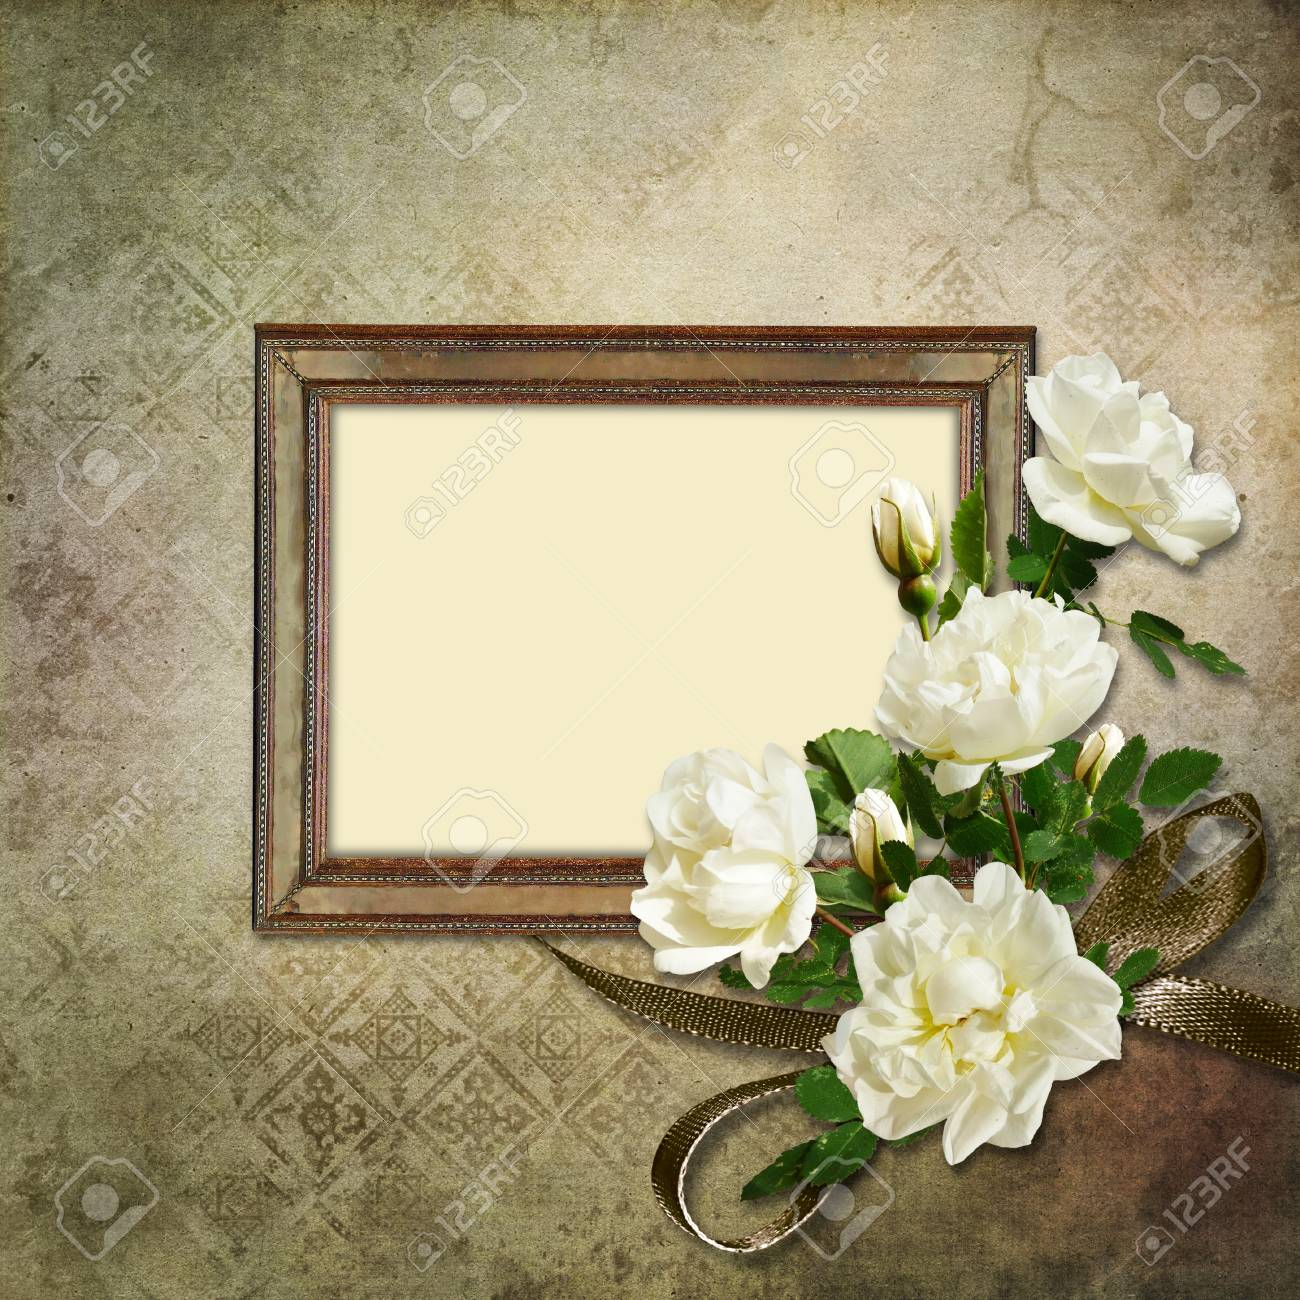 Vintage background with frame and roses Stock Photo - 17217098